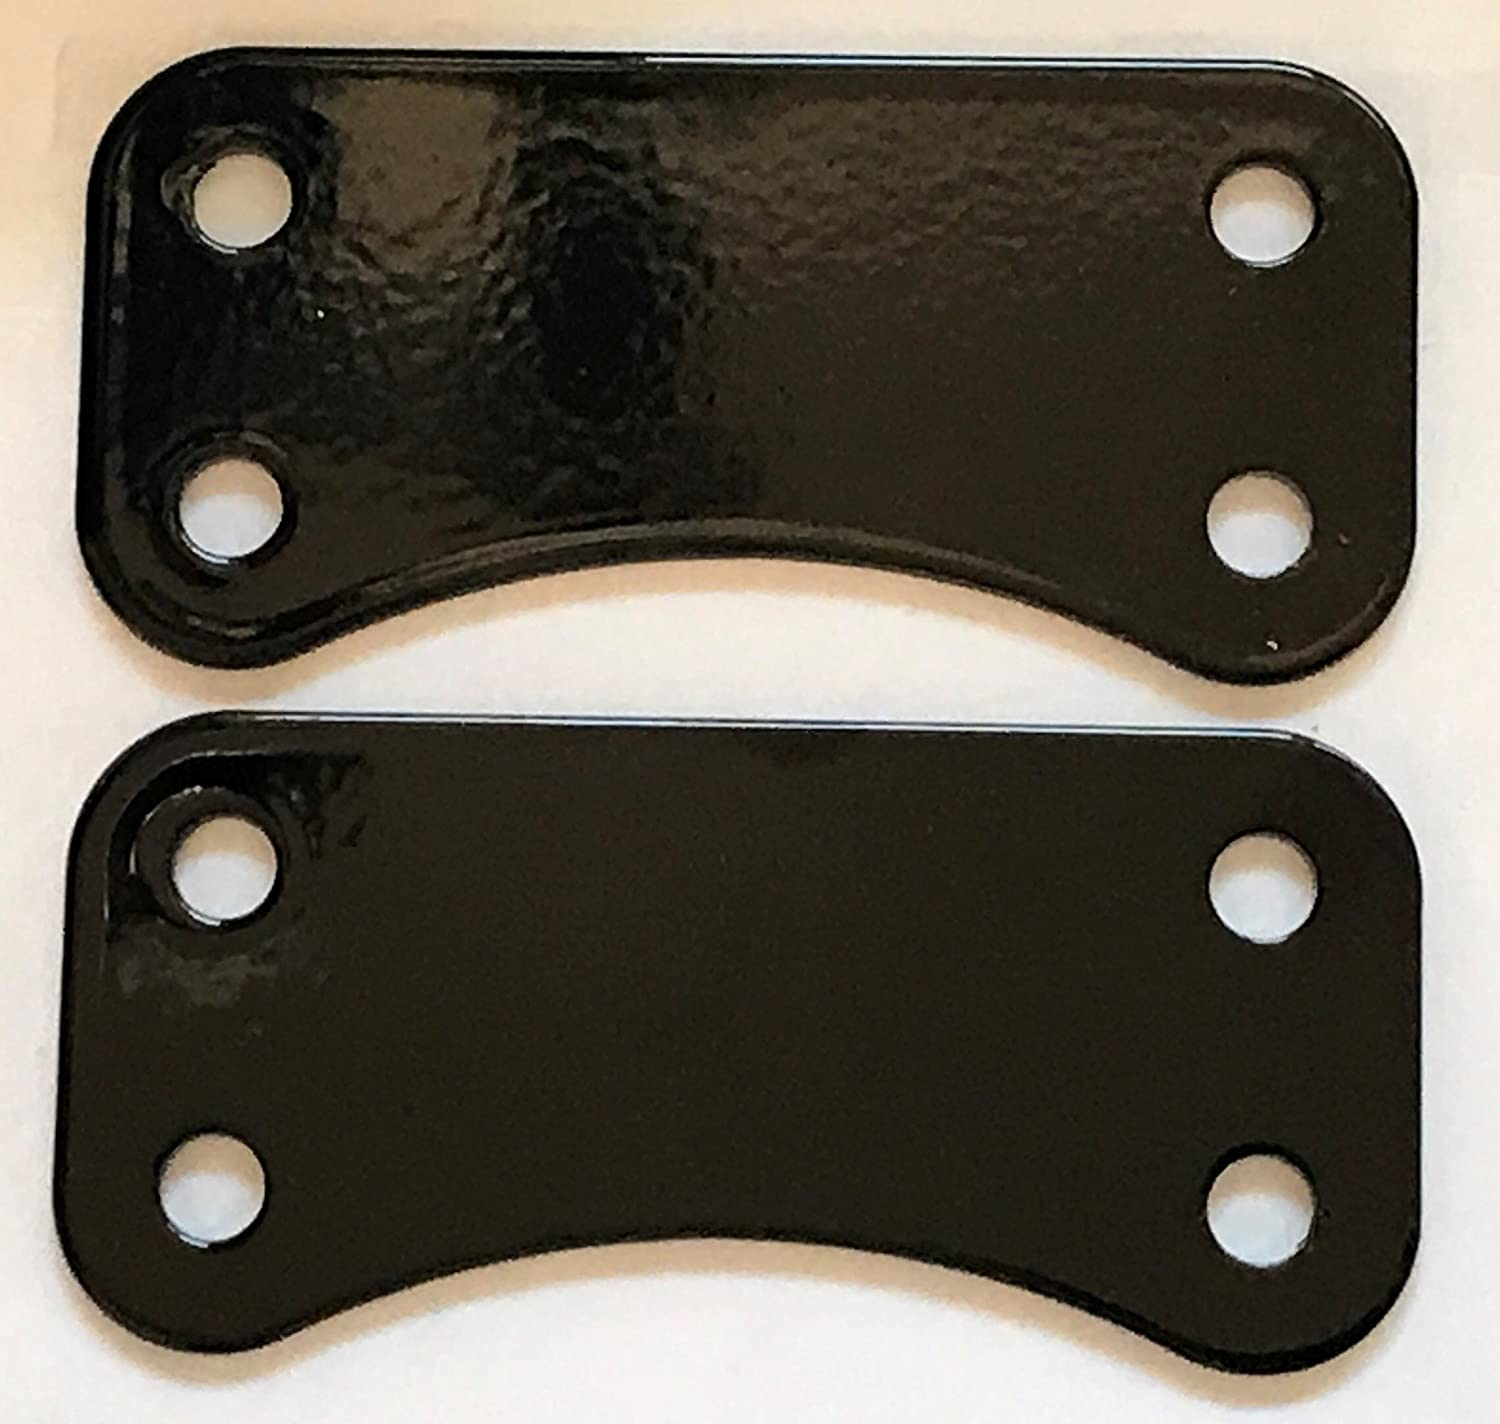 Fender Lift Brackets for 21' Wheel Upgrade on 2014 and Newer Touring Harley Davidson Kustom Cycle Parts